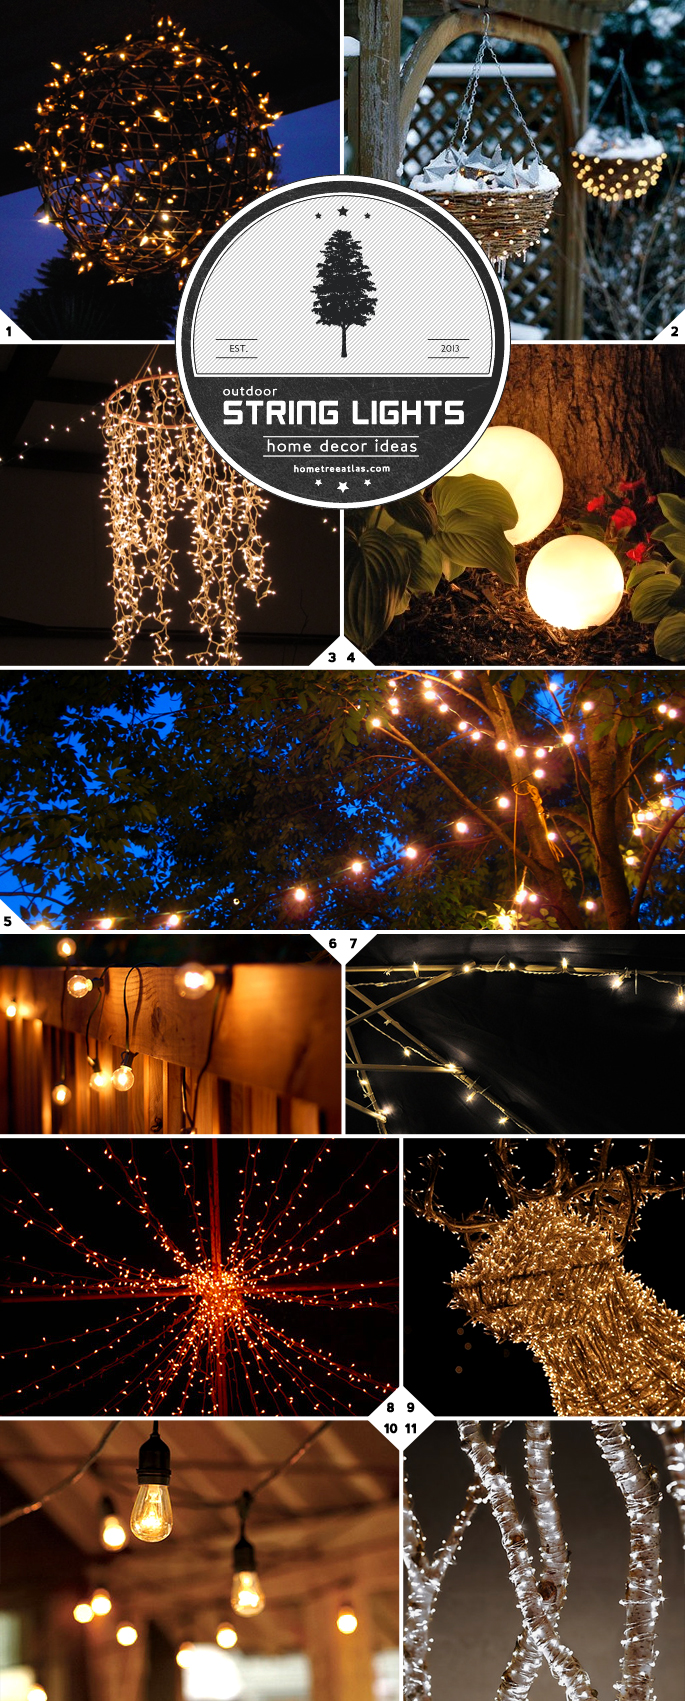 Home decor ideas creative ways of using string lights for Home decor ideas string lights